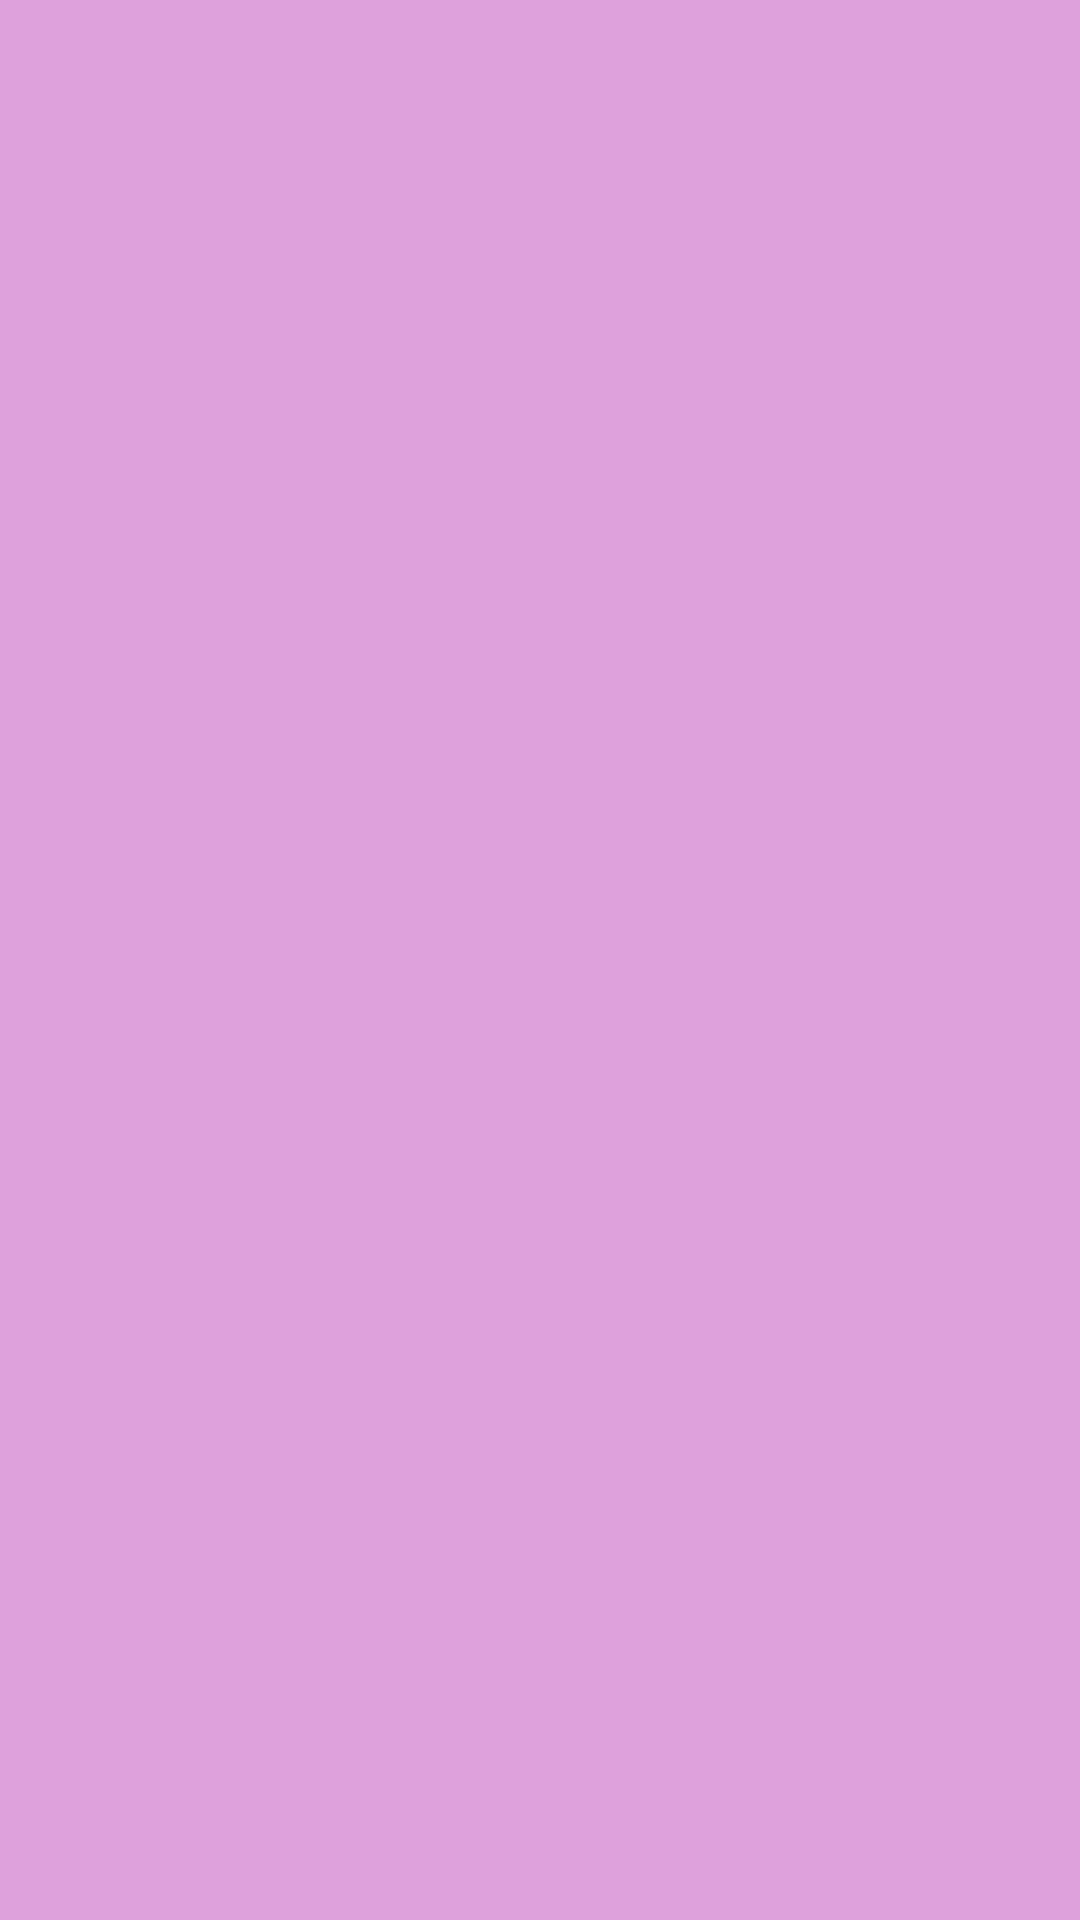 1080x1920 Pale Plum Solid Color Background